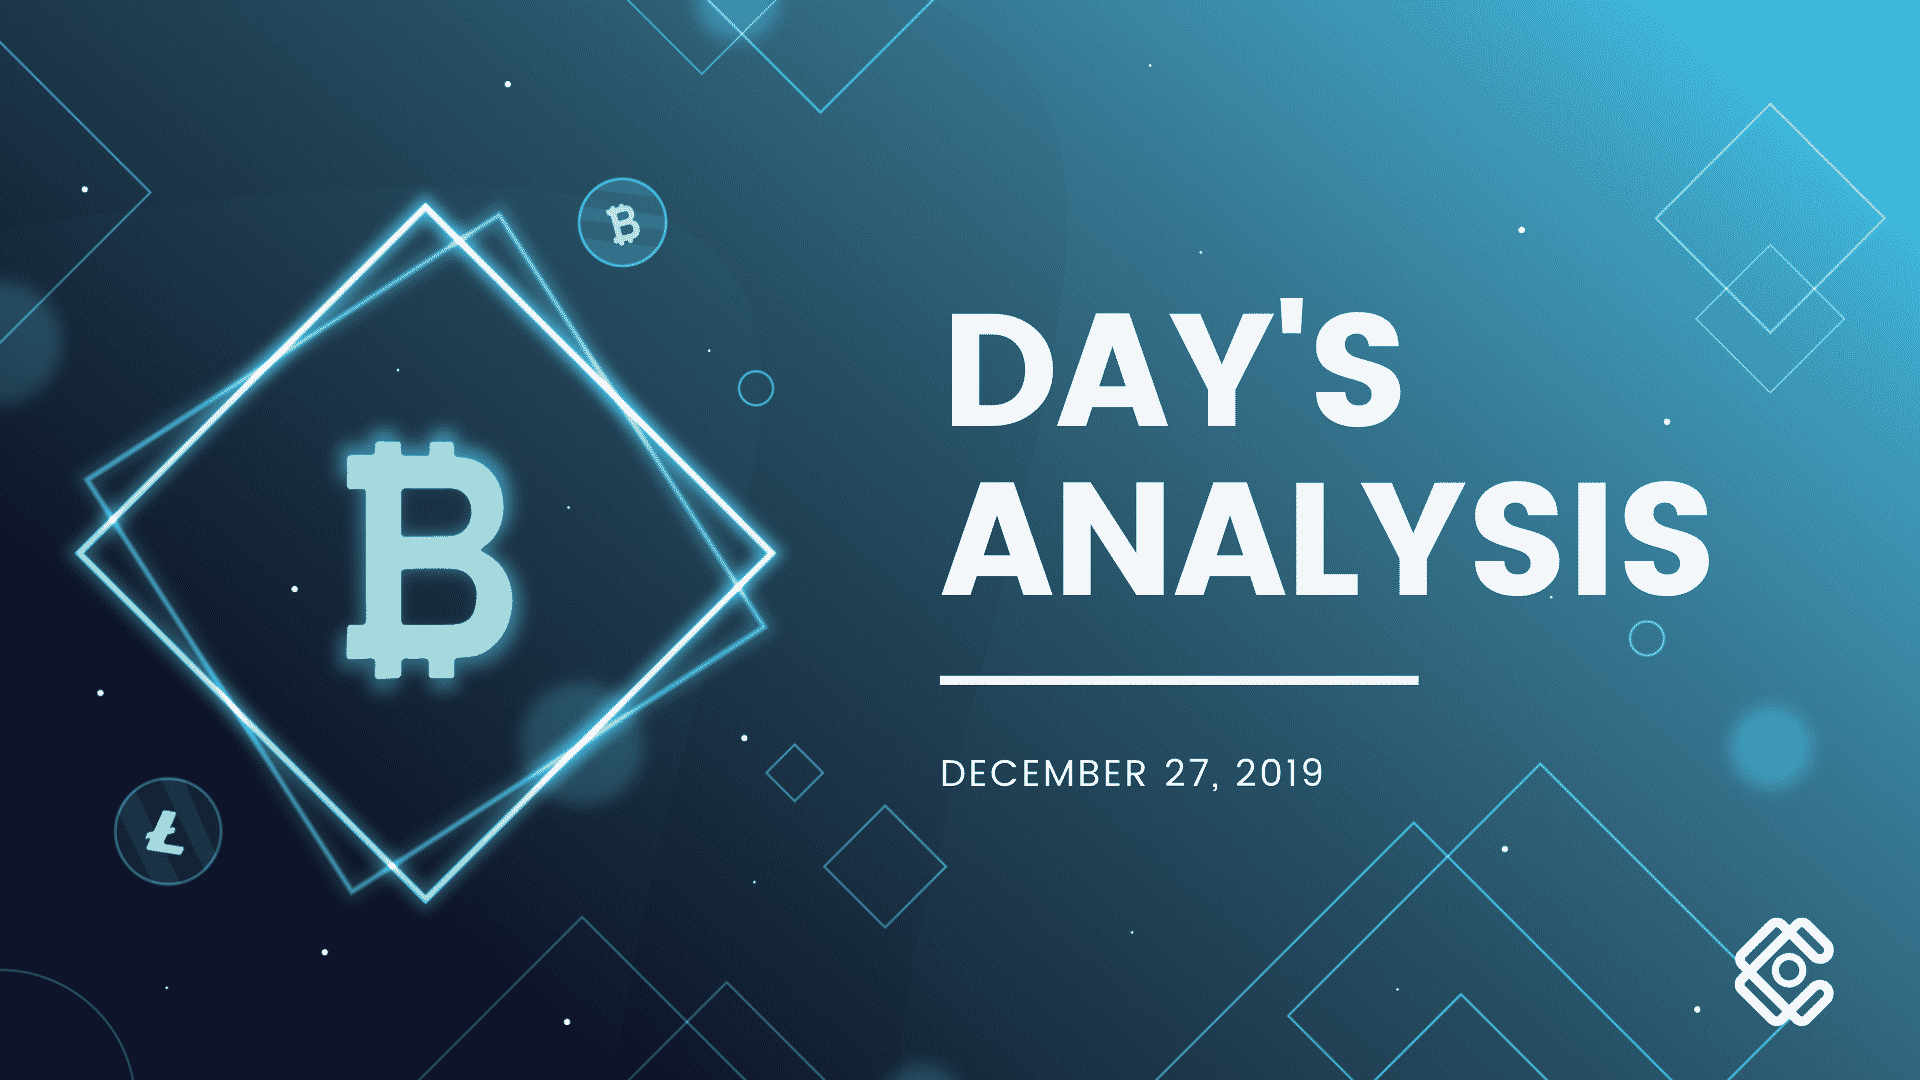 Market Analysis of December 27, 2019